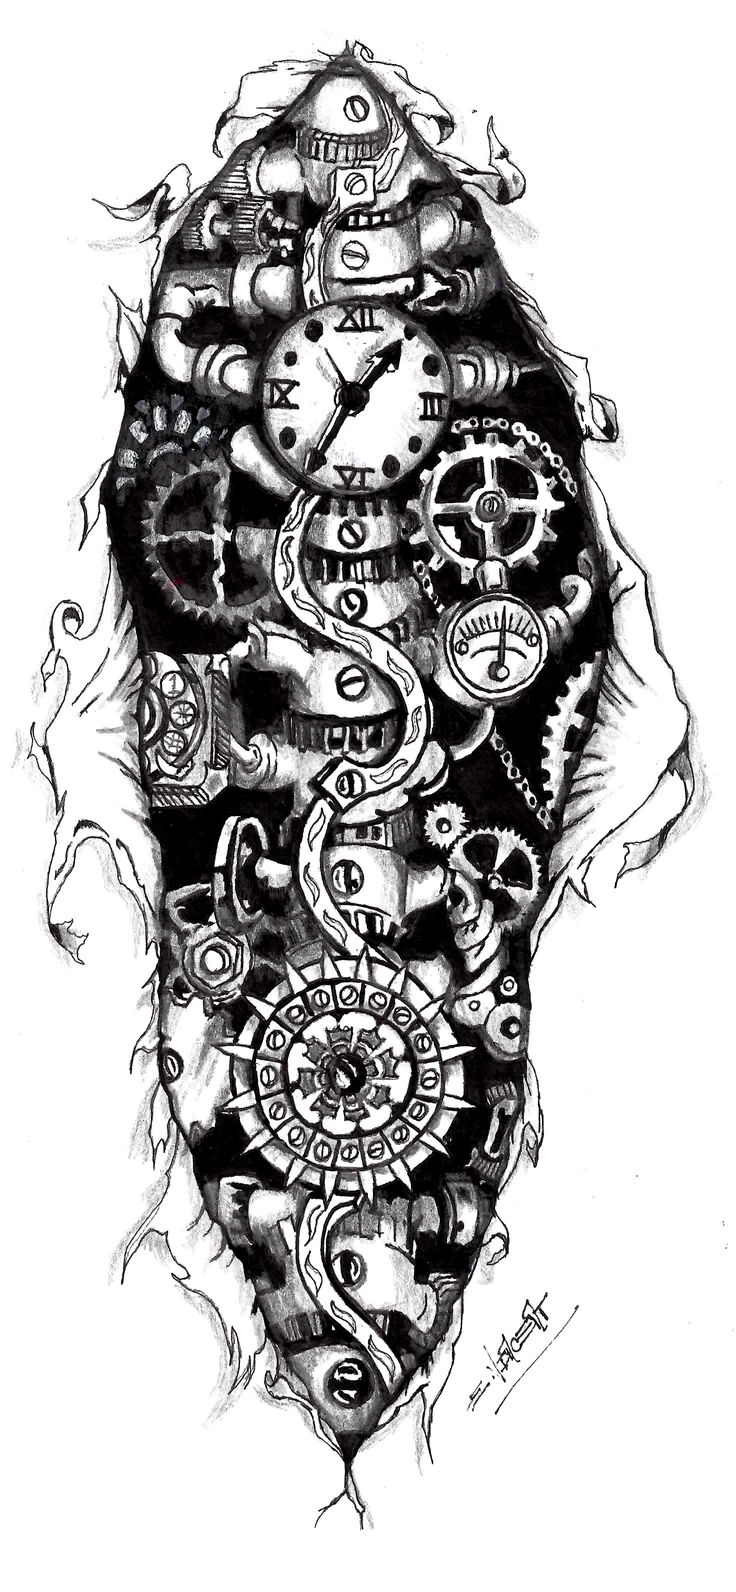 Tattoo design picture - Steampunk Gears Tattoo Steampunk Clock Tattoo Designs Steampunk Cloc